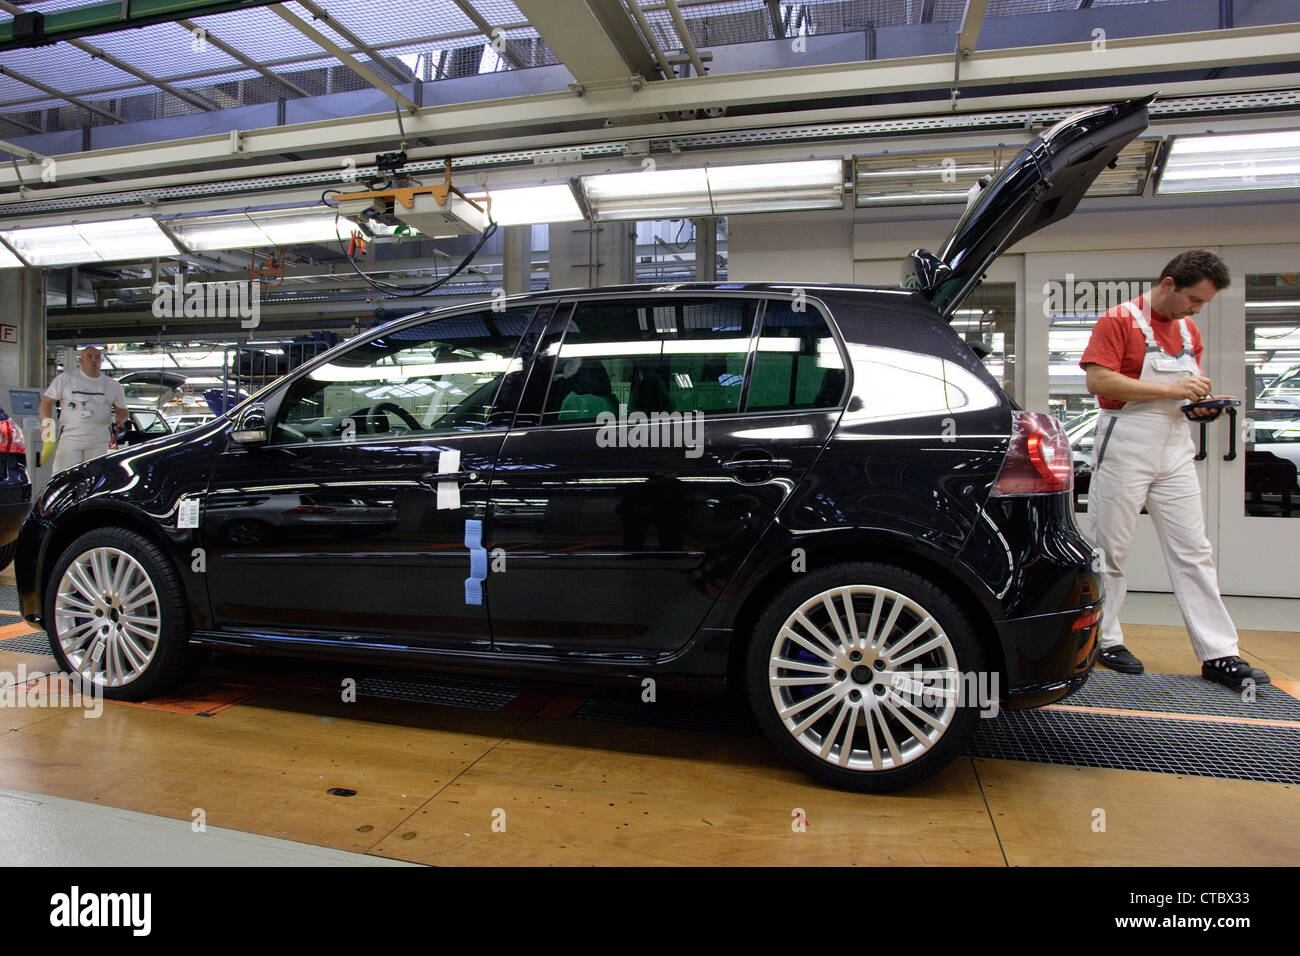 wolfsburg production of the golf 5 r32 at volkswagen ag stock photo royalty free image. Black Bedroom Furniture Sets. Home Design Ideas